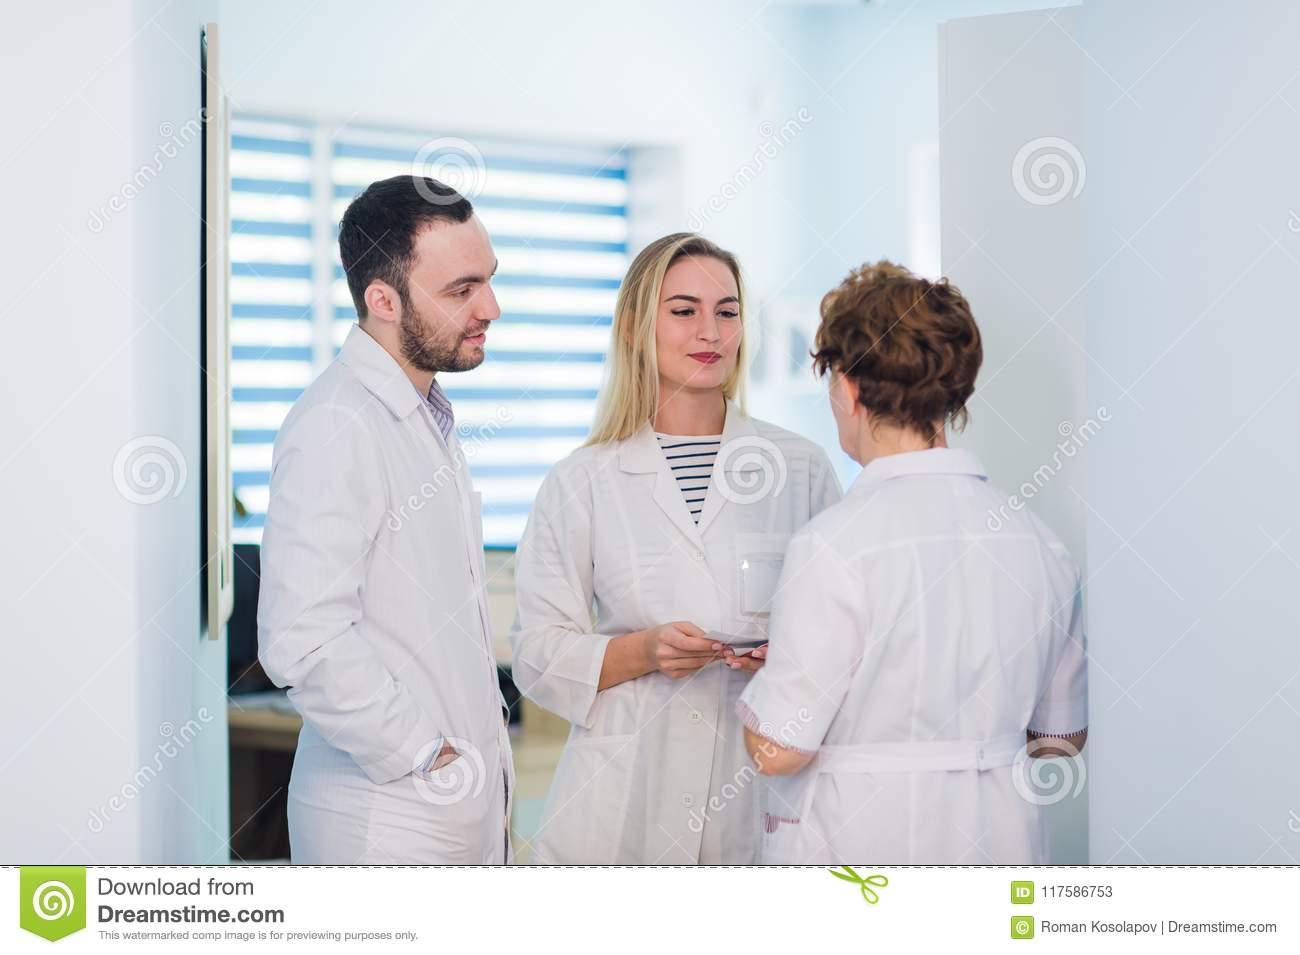 Group of senior doctors and young nurses examining medical report of patient. Team of doctors working together on